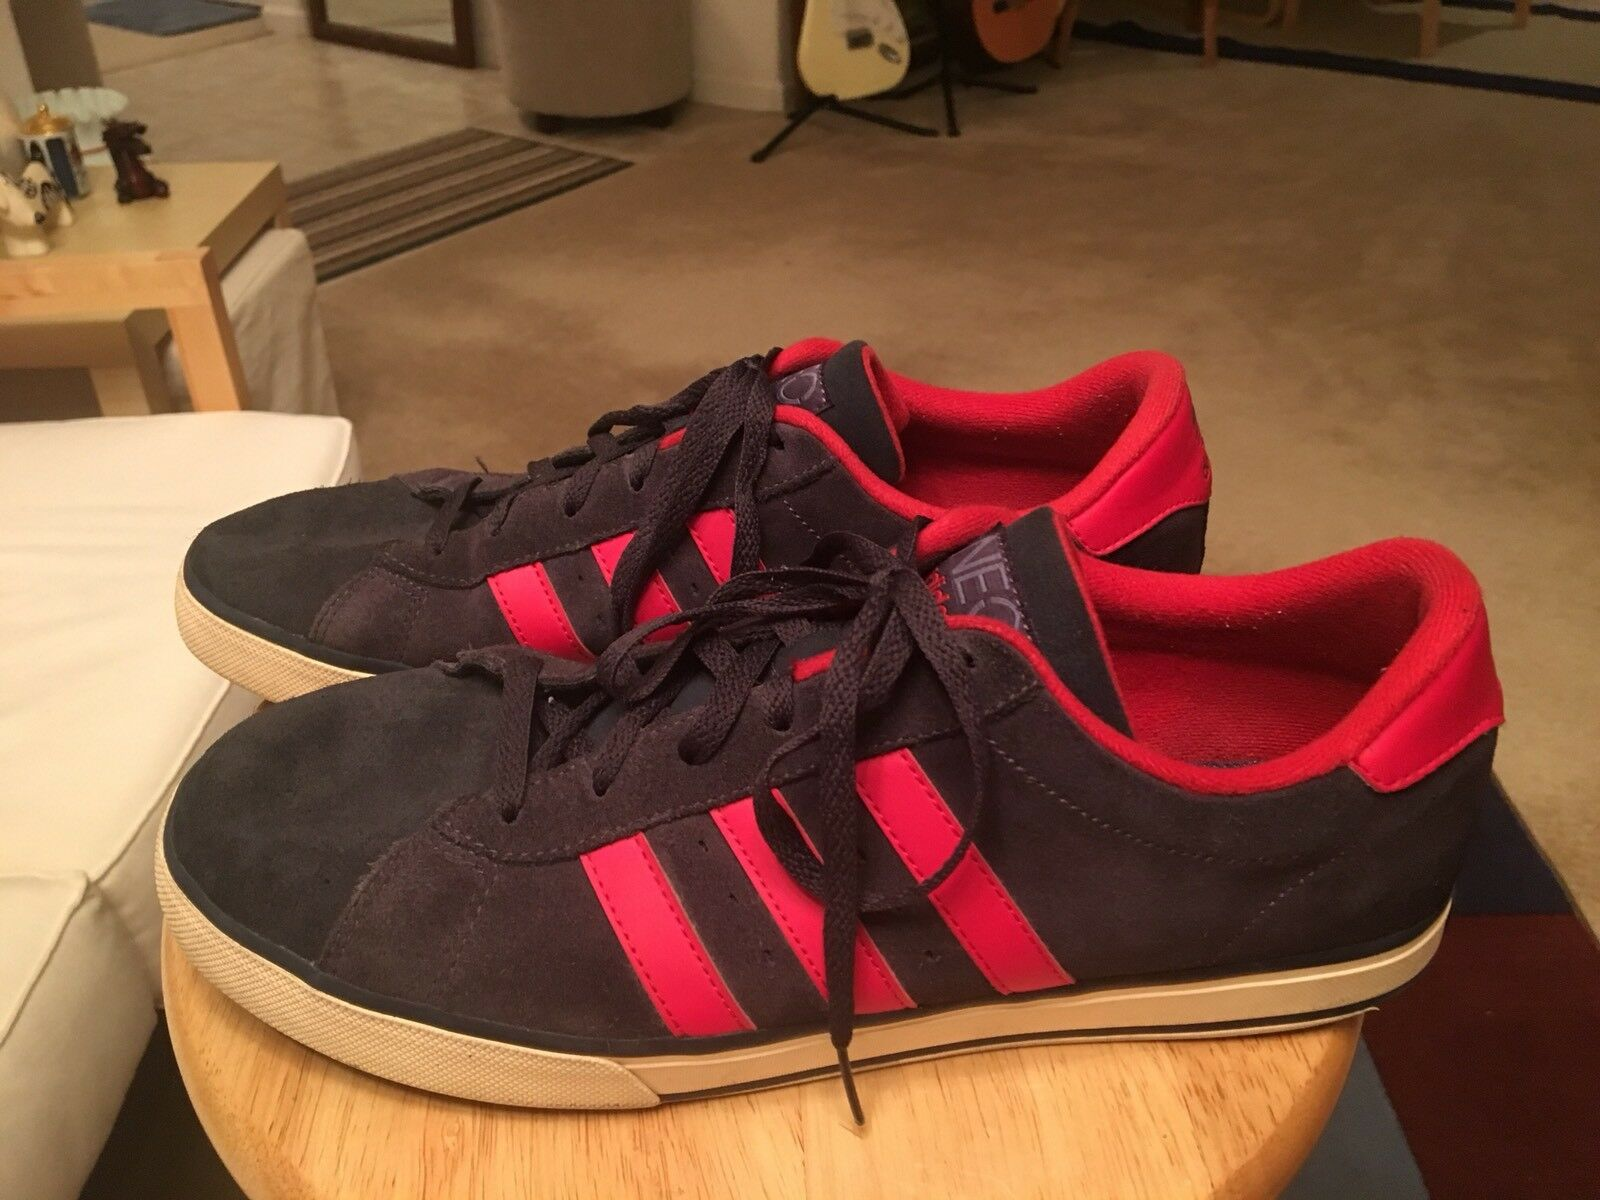 4bab96ed1 Adidas Neo Label Navy bluee Red Trim Men s US12 US12 US12 Suede Athletic  Sneakers shoes 9f58ff